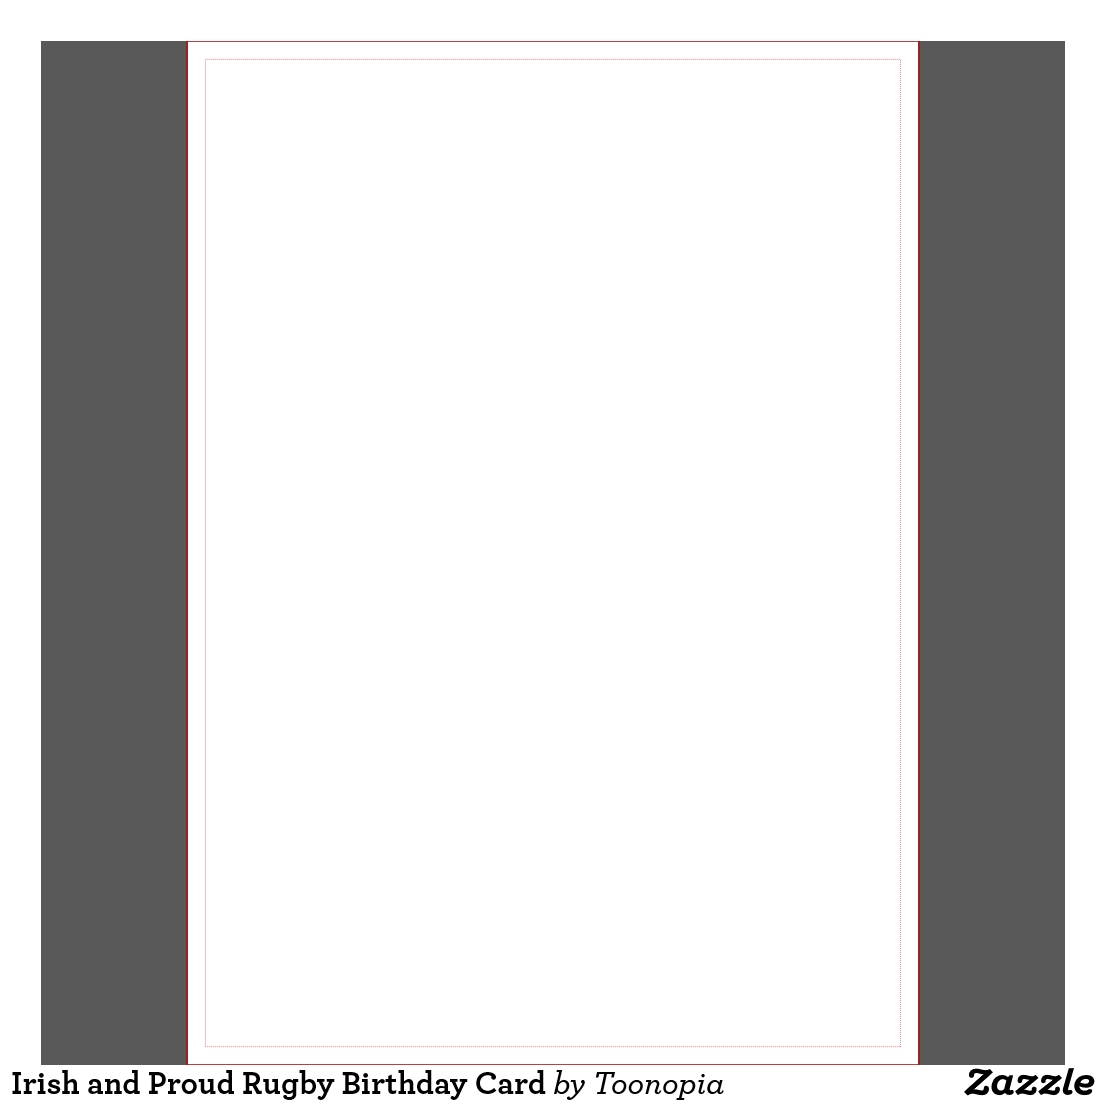 Assez Carte Anniversaire Humour Rugby | coleteremelly site HR54